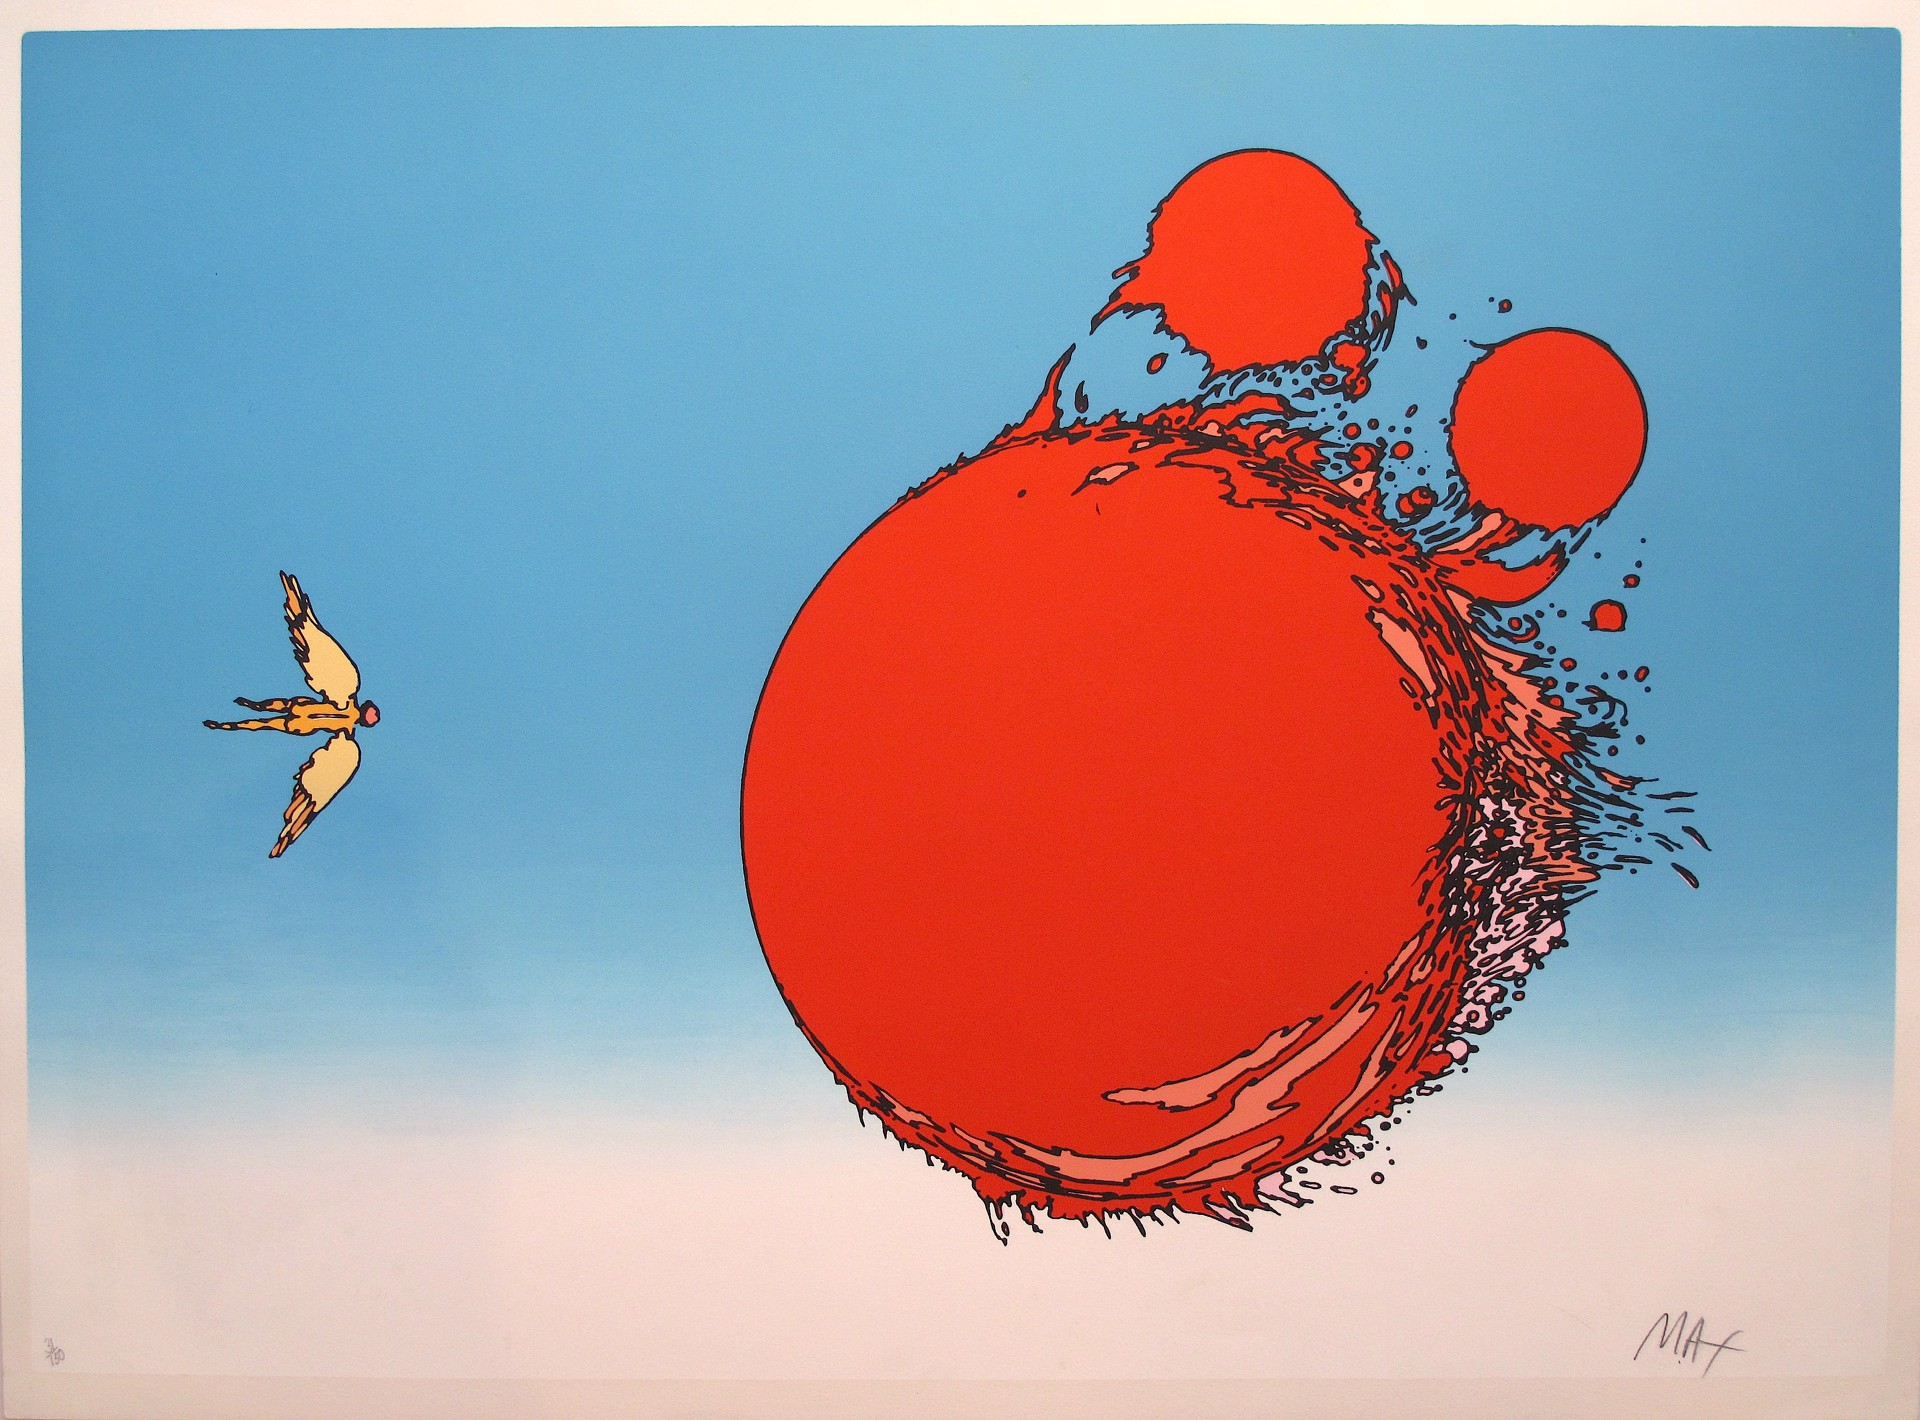 Ball of Fire - Icarus by Peter Max